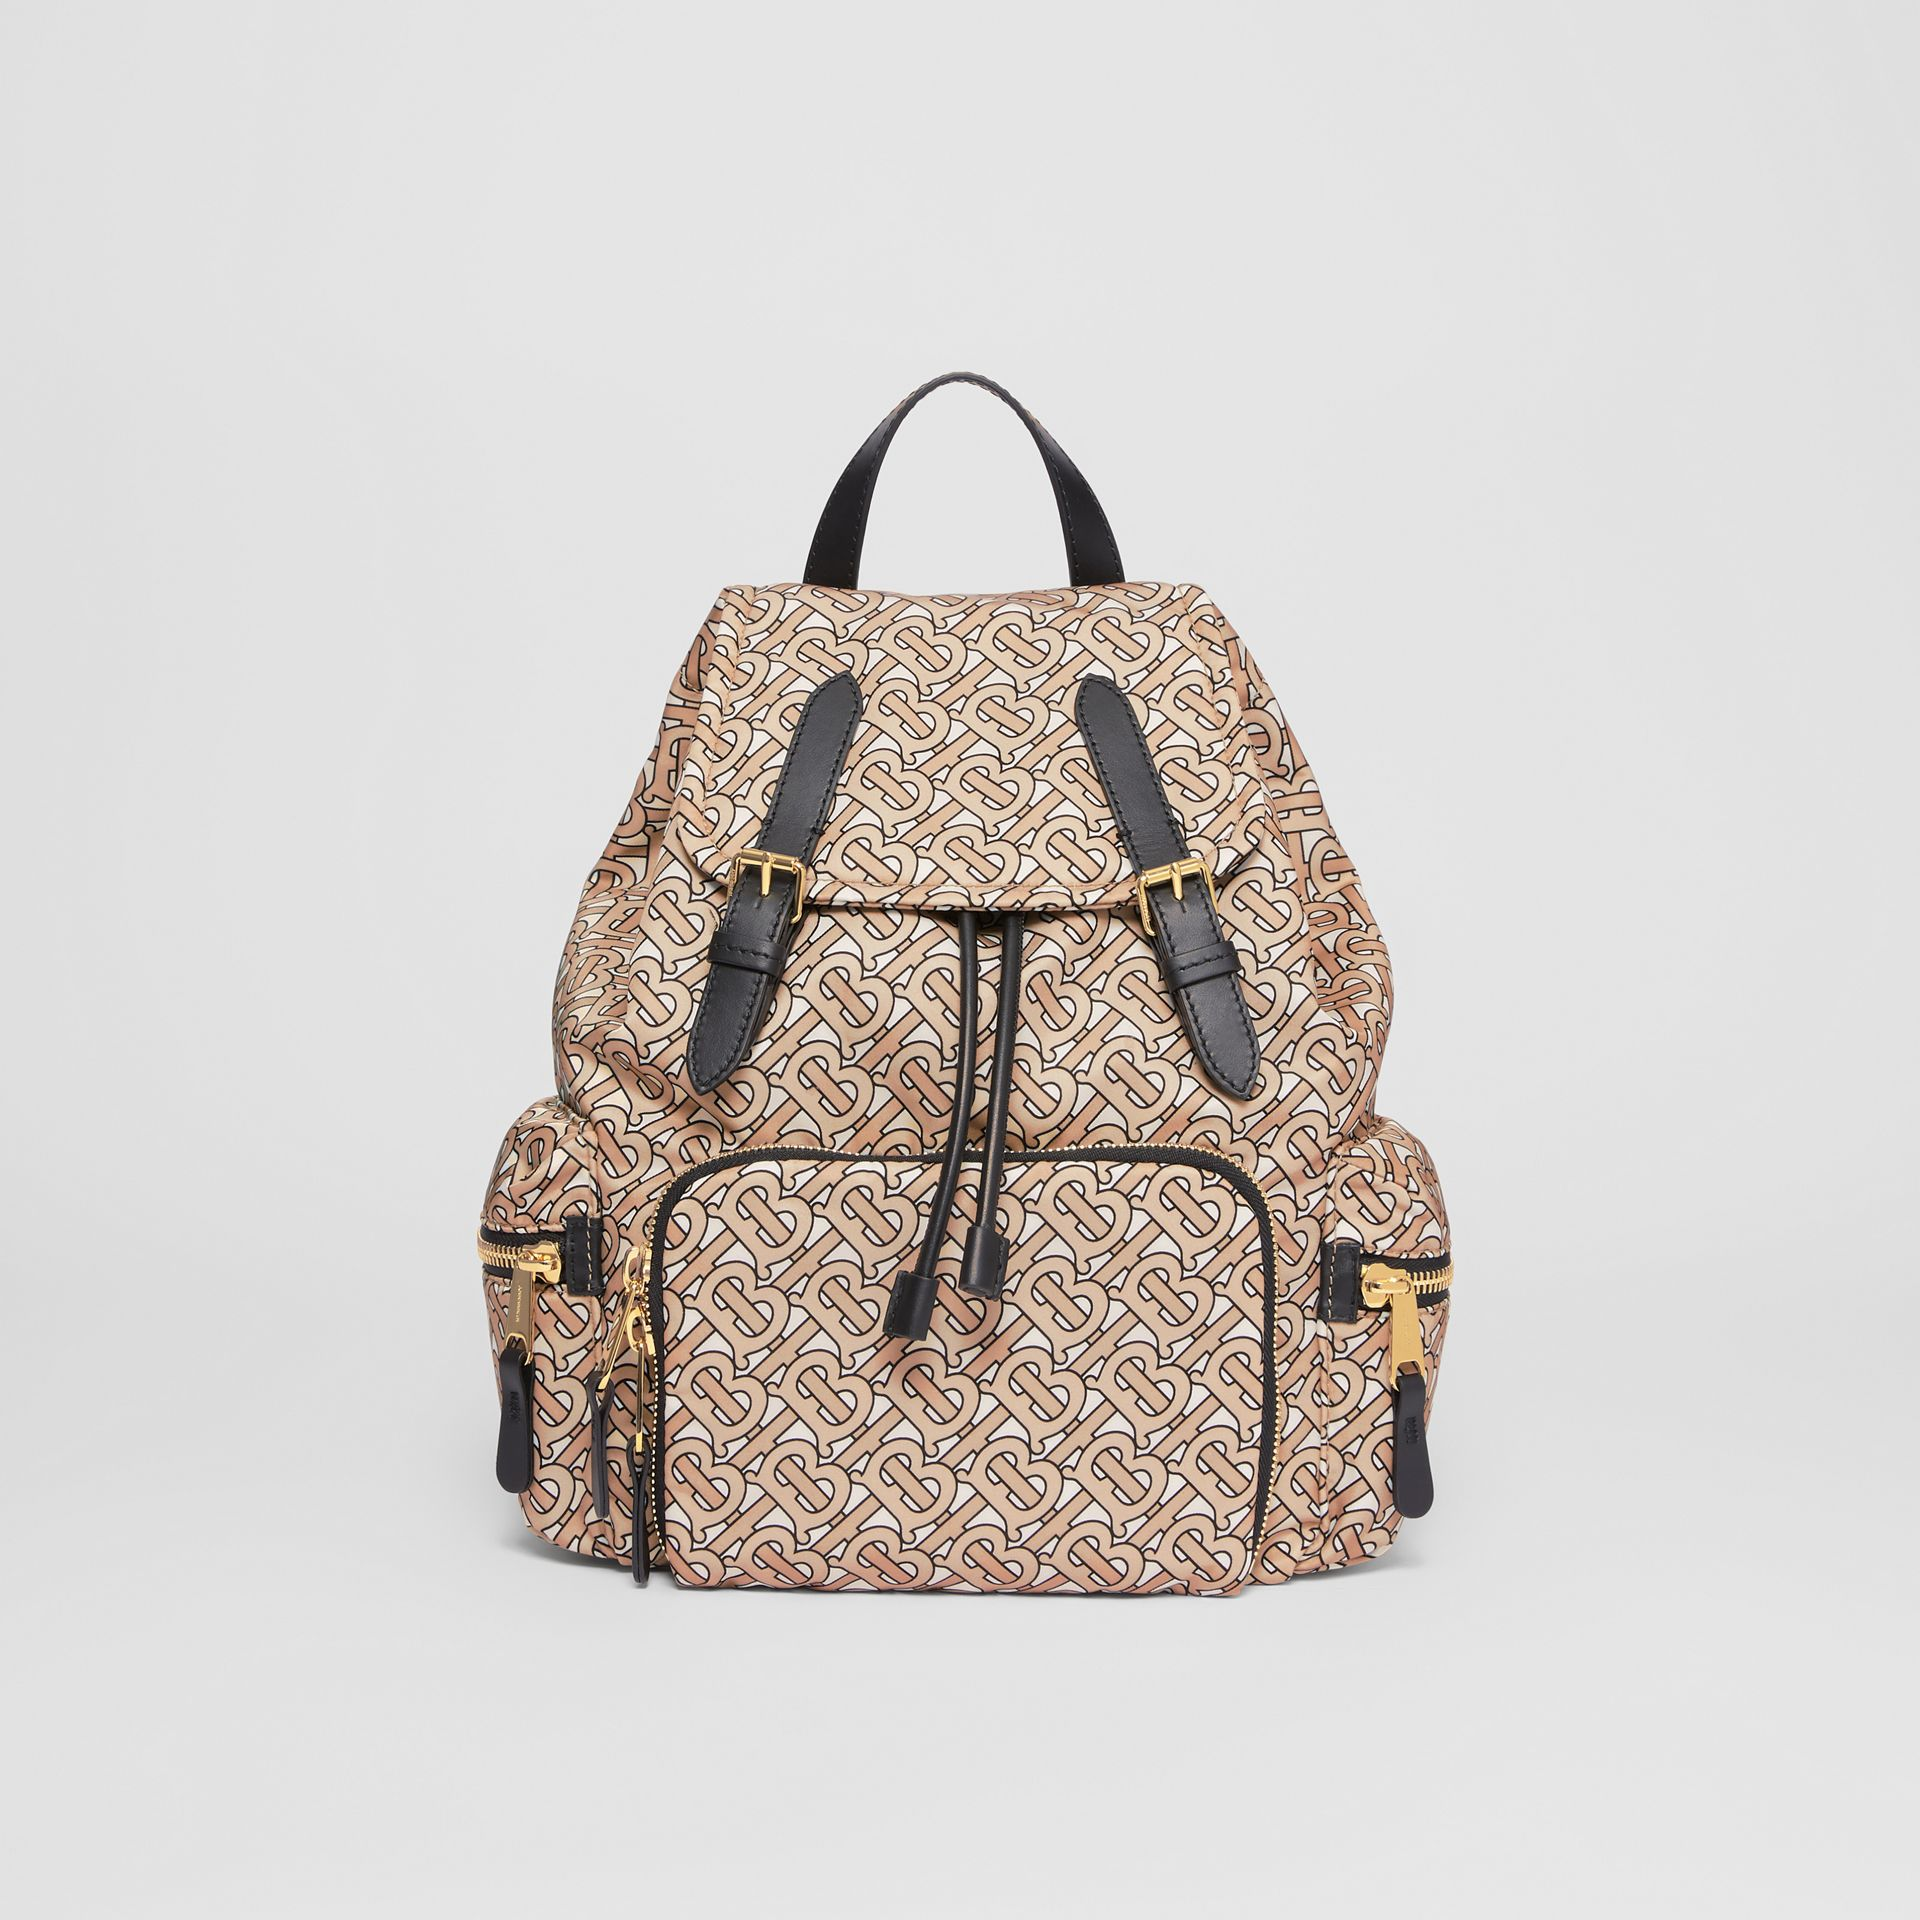 Sac The Rucksack moyen en nylon Monogram (Beige) - Femme | Burberry - photo de la galerie 0